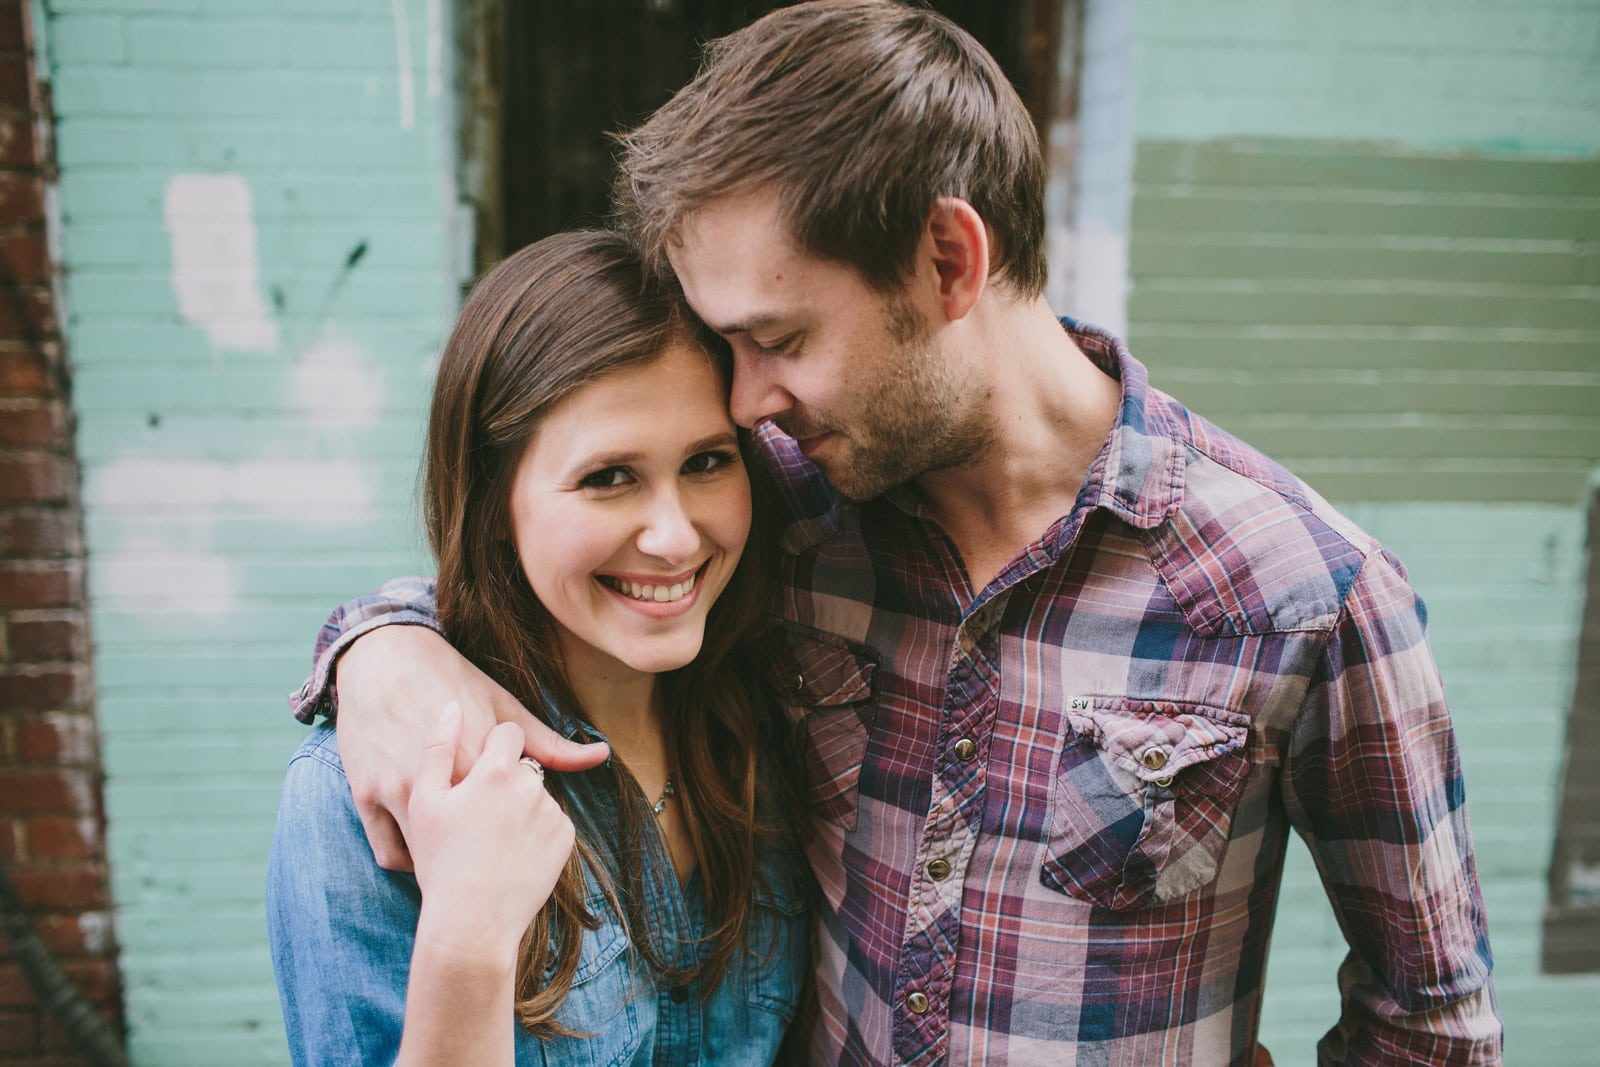 San_Francisco_Engagement_Holly_Farm_Wedding_005